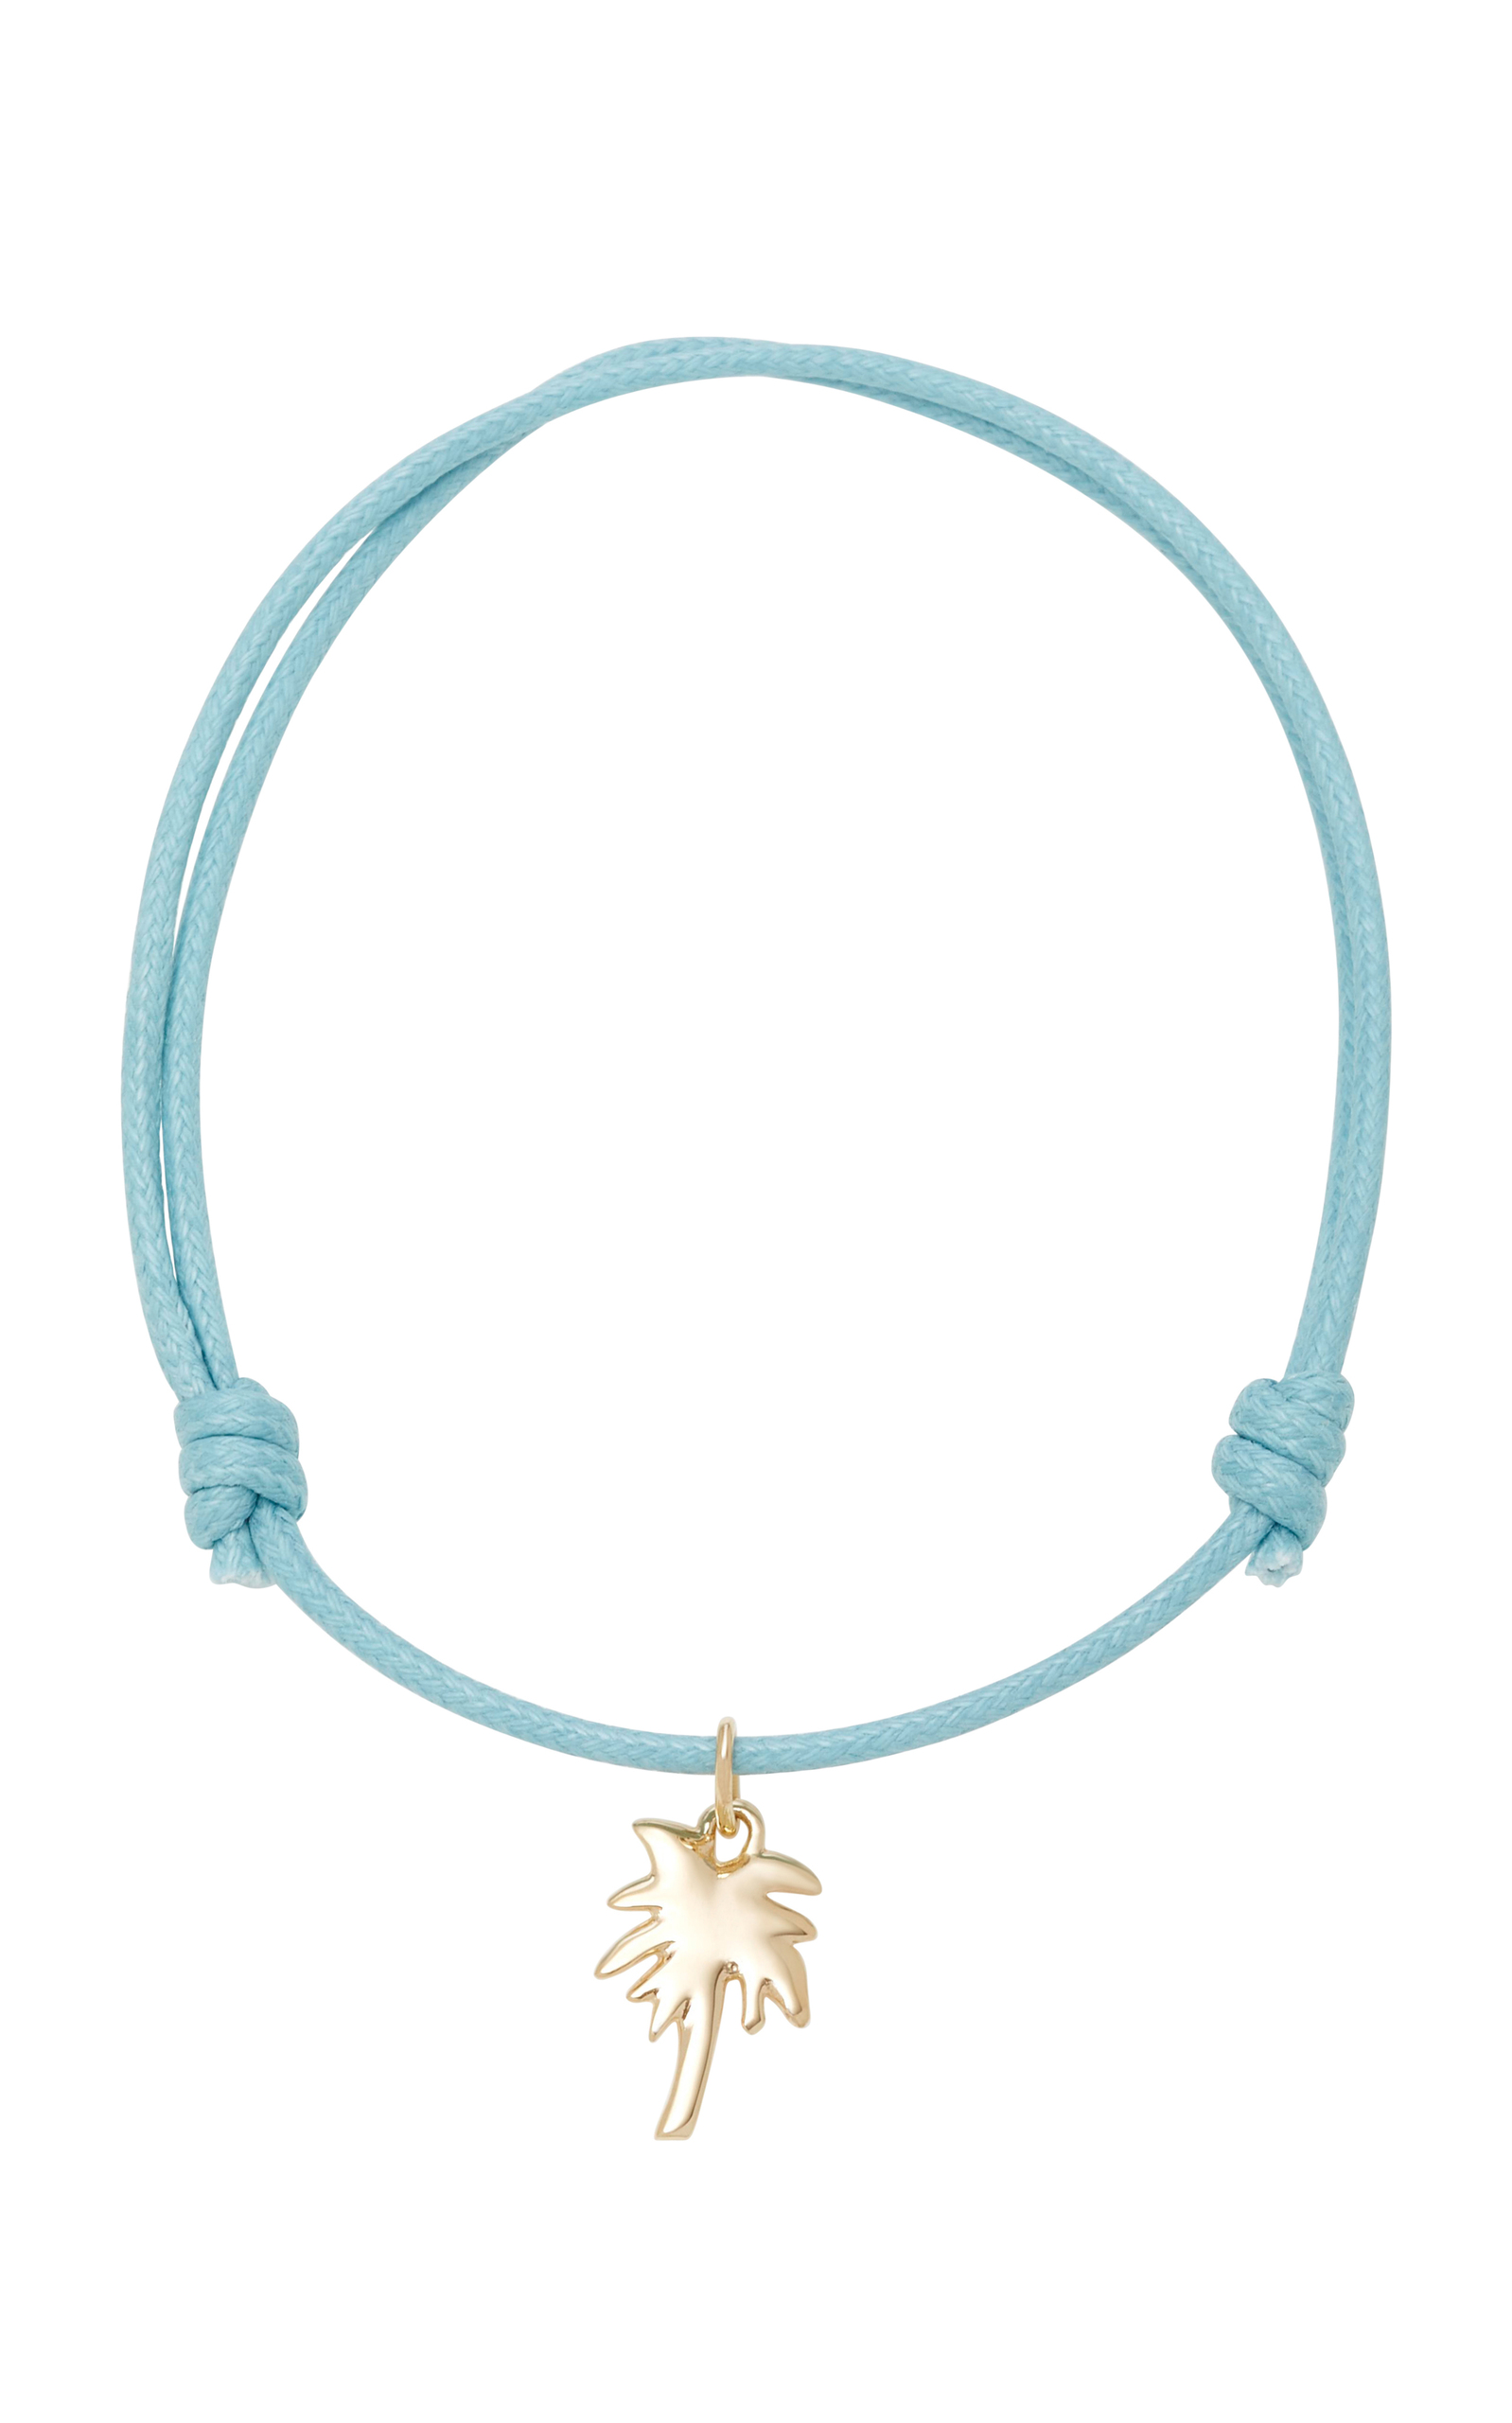 WITH LOVE DARLING PALM TREE 18K GOLD CORD BRACELET